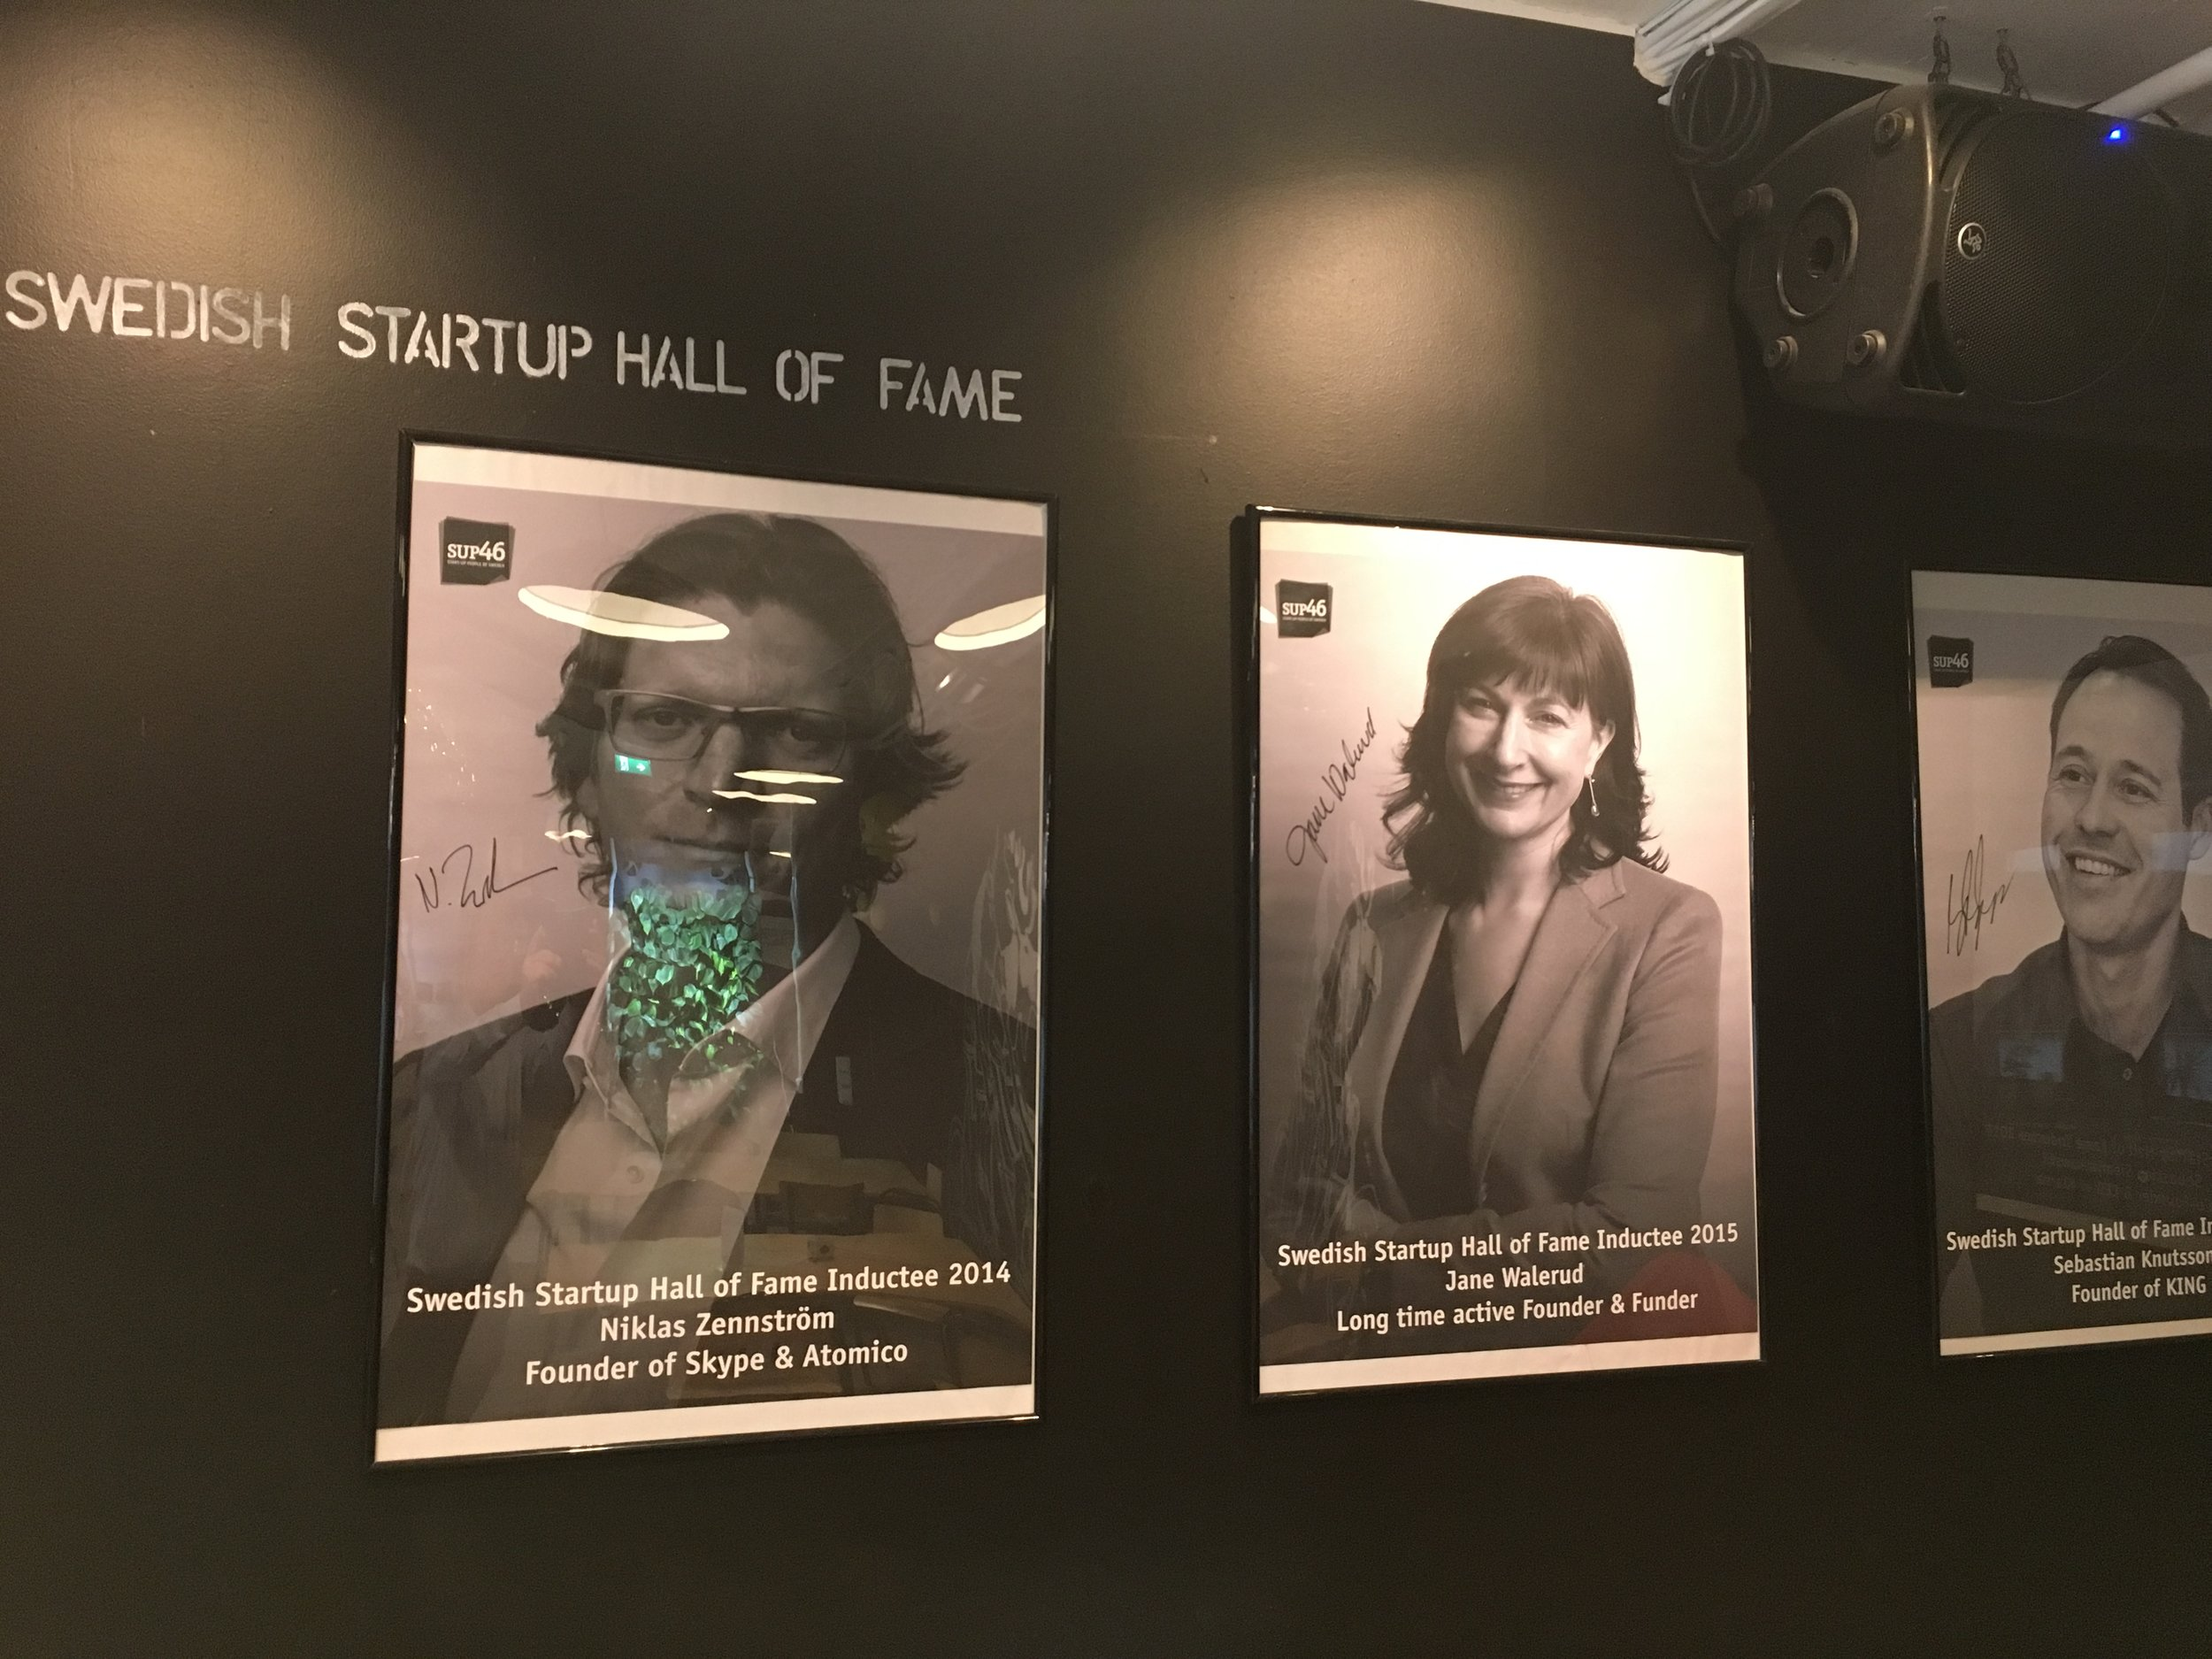 SUP46 Hall of Fame, part 1